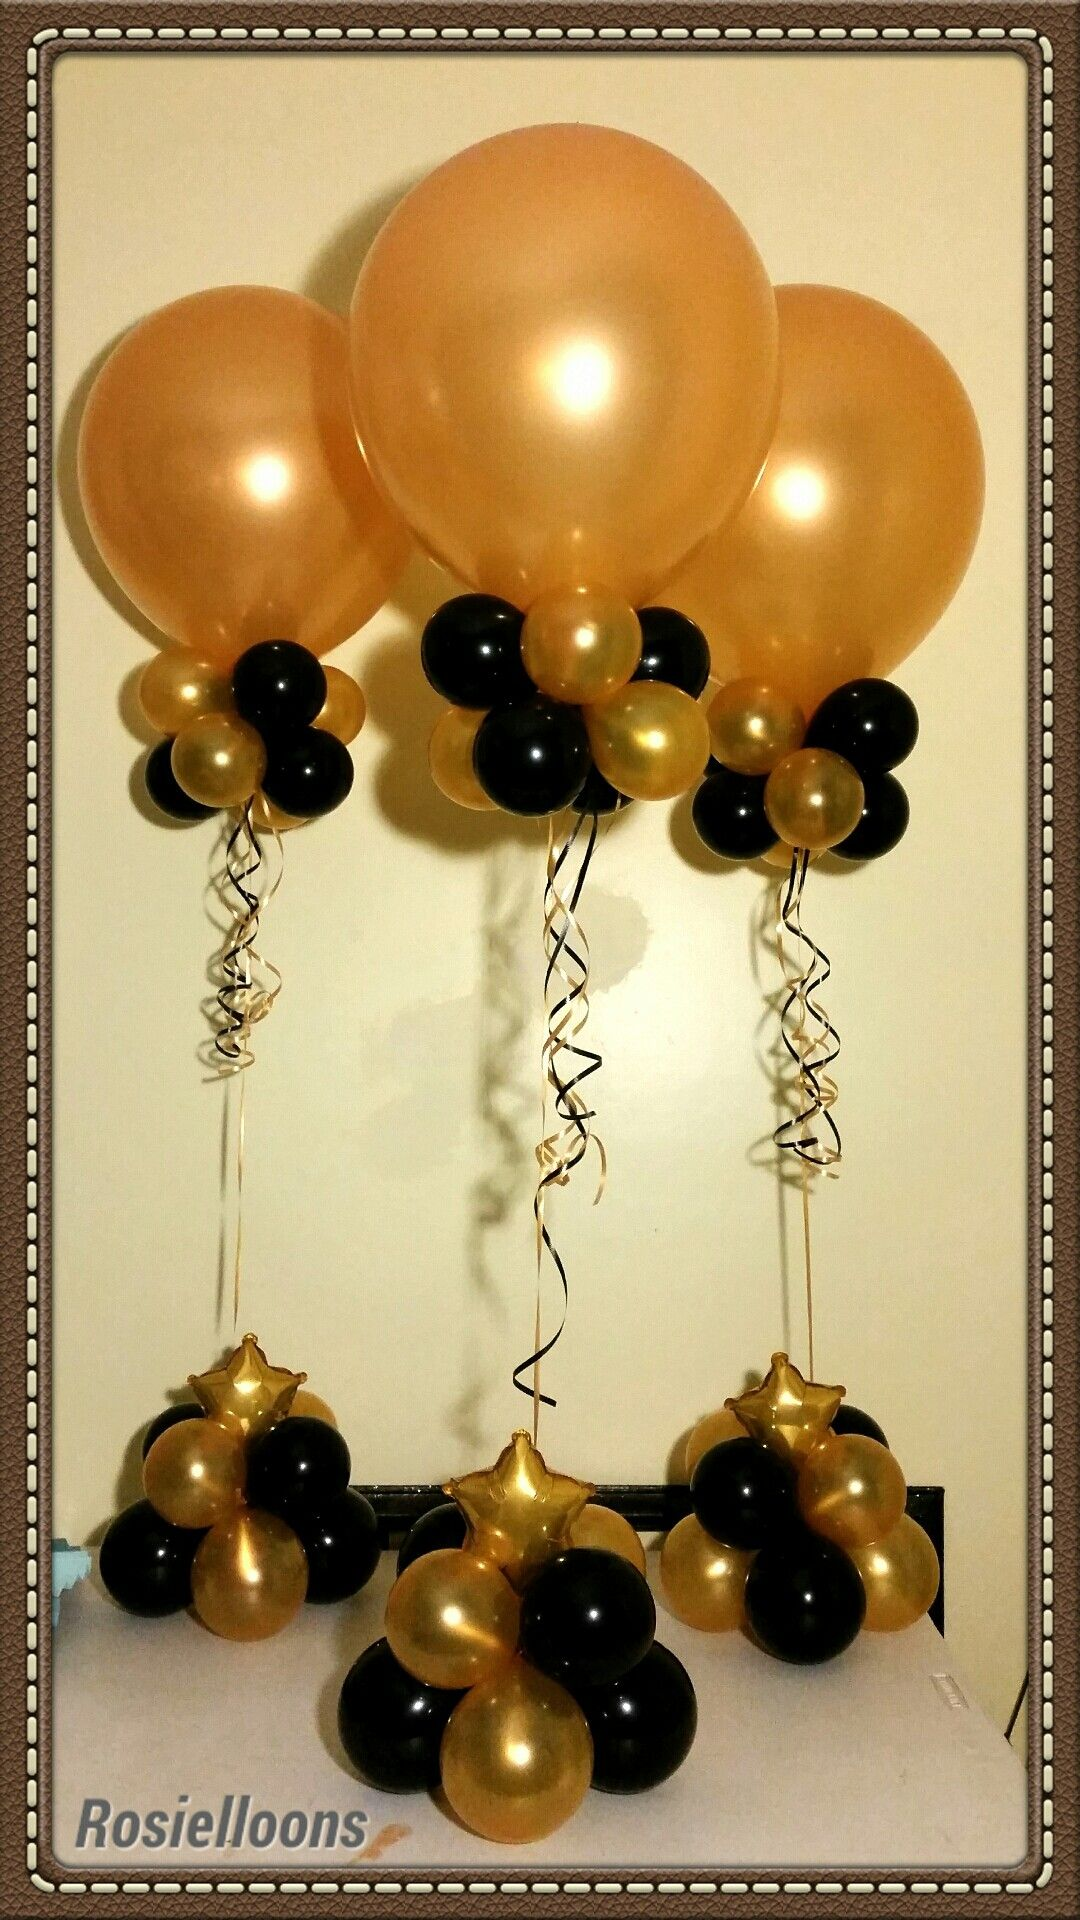 Church anniversary church anniversary pinterest for Birthday balloon centerpiece ideas